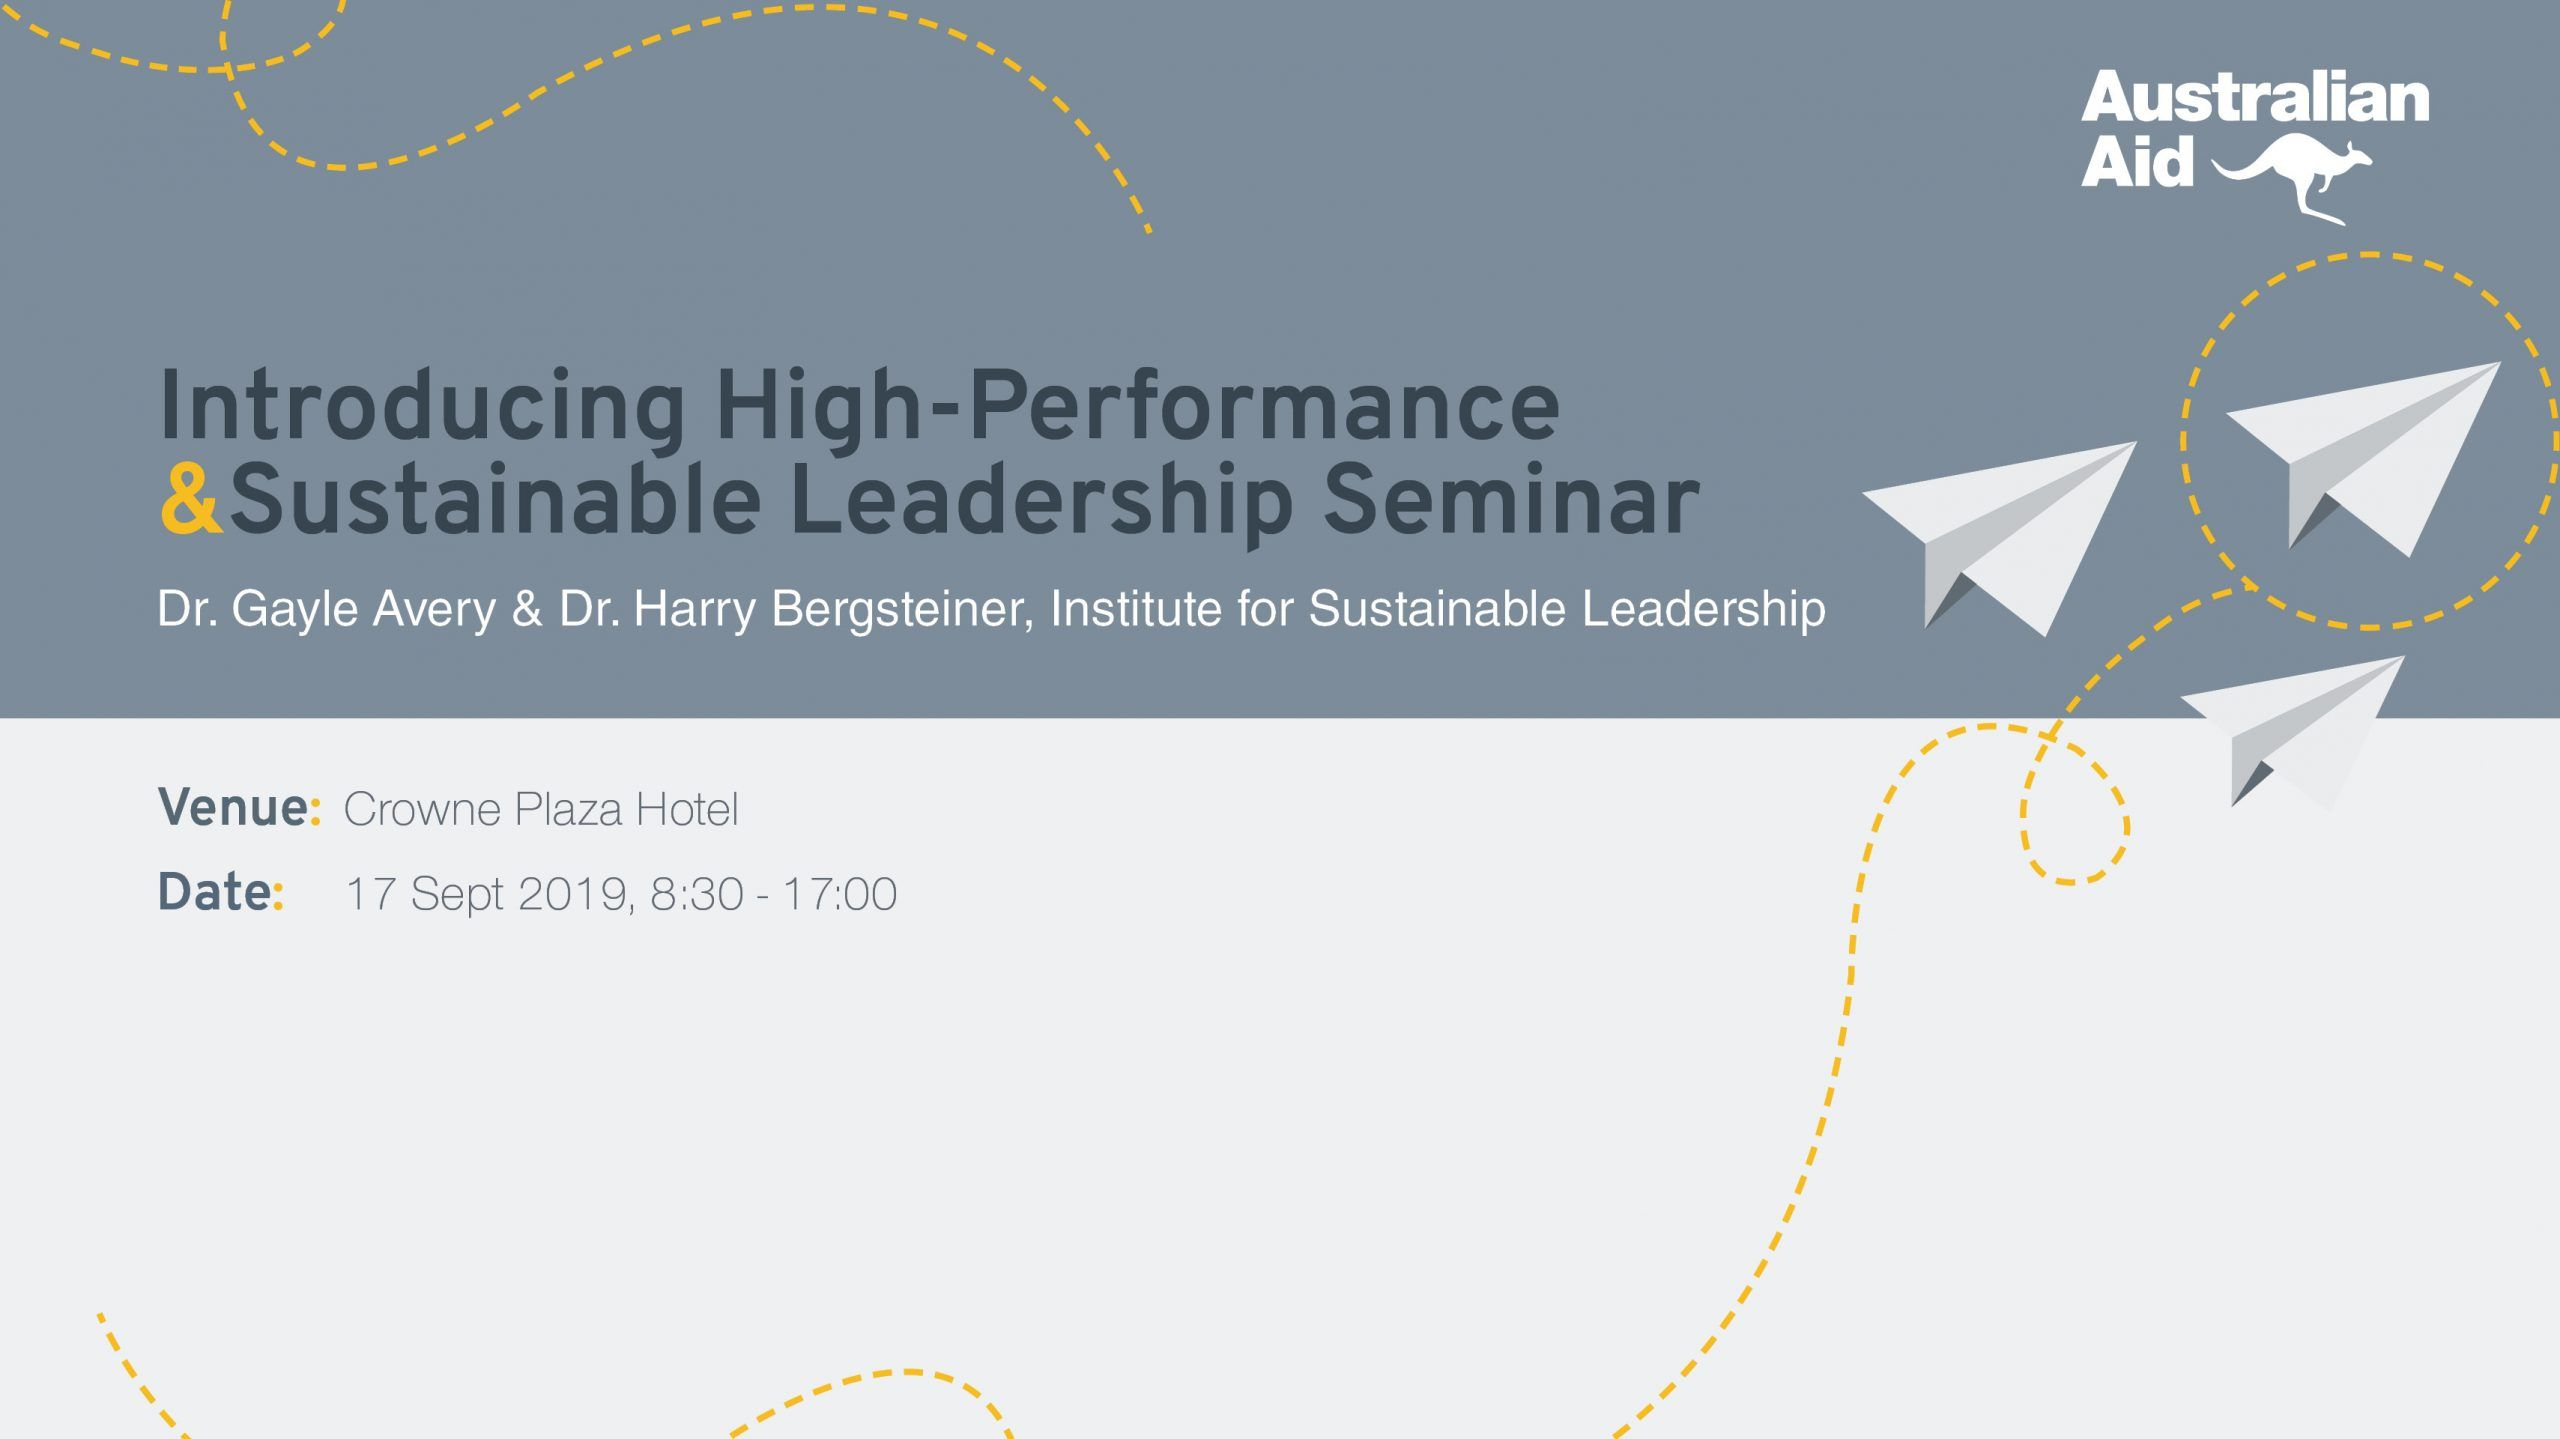 High Performance & Sustainable Leadership Seminar